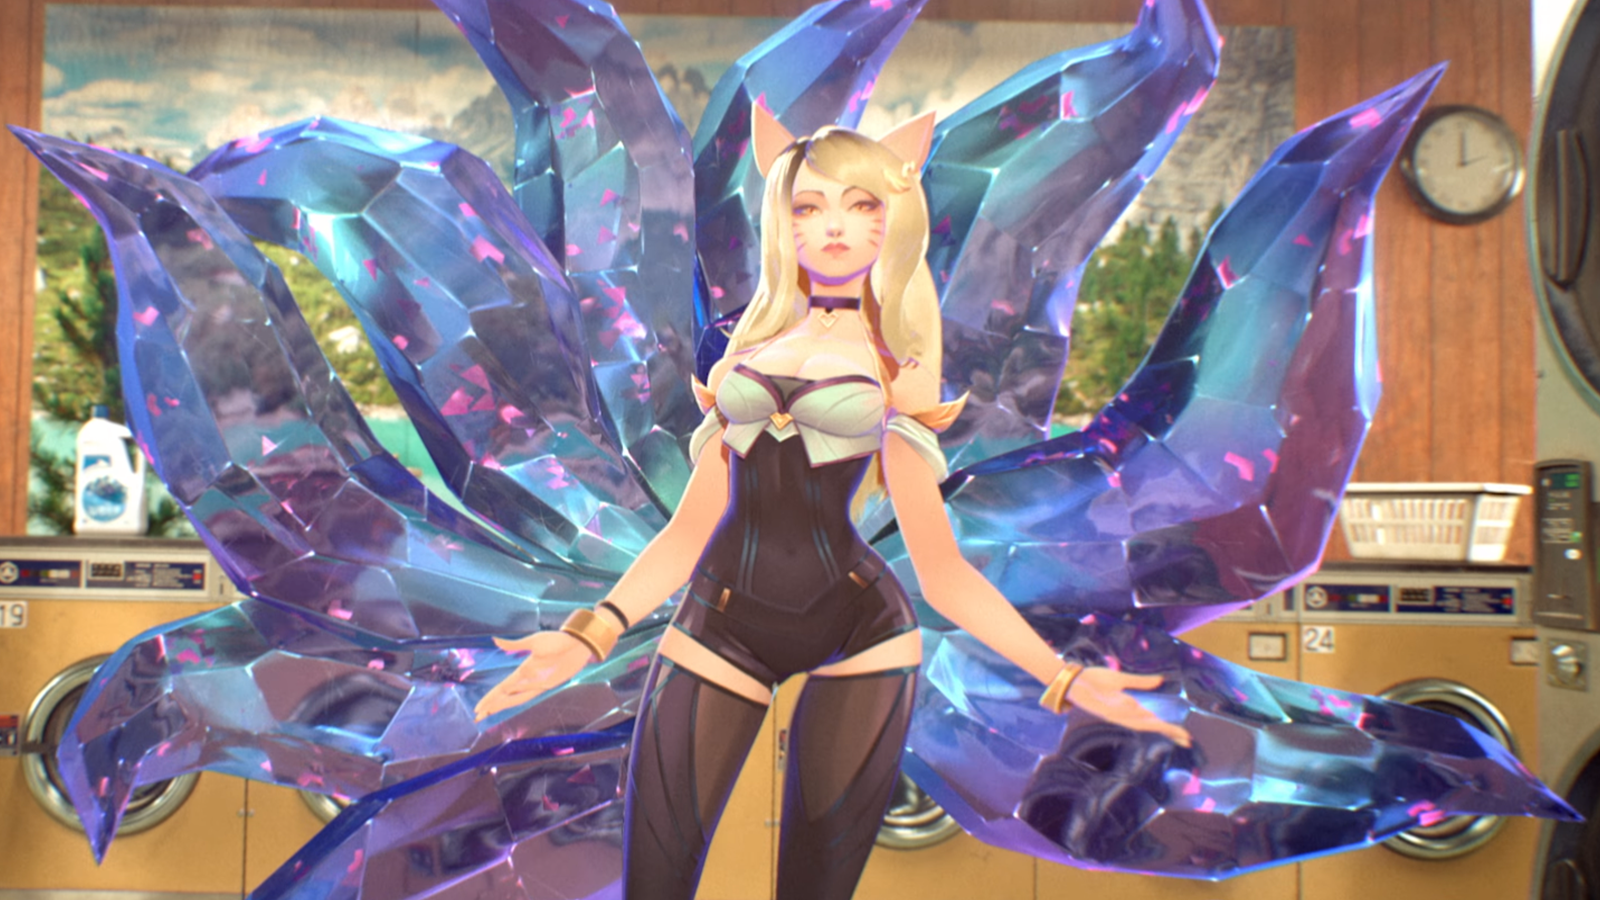 Animated K/DA popstar Ahri is voiced by (G)I-dle star Miyeon for the smash hit